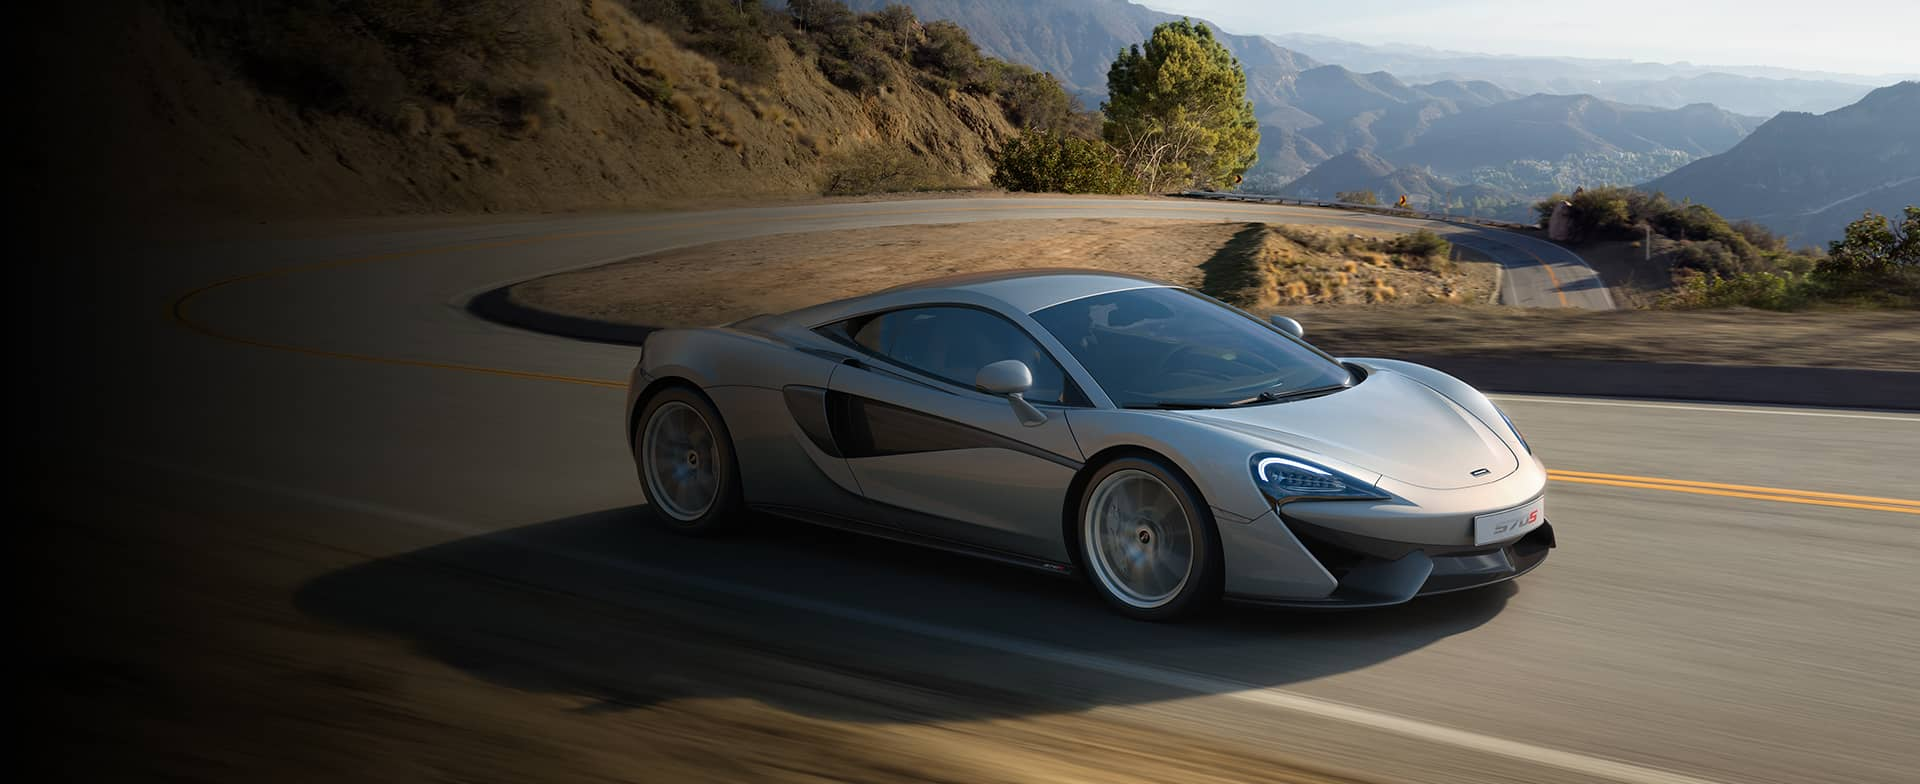 McLaren 570 For the Drive